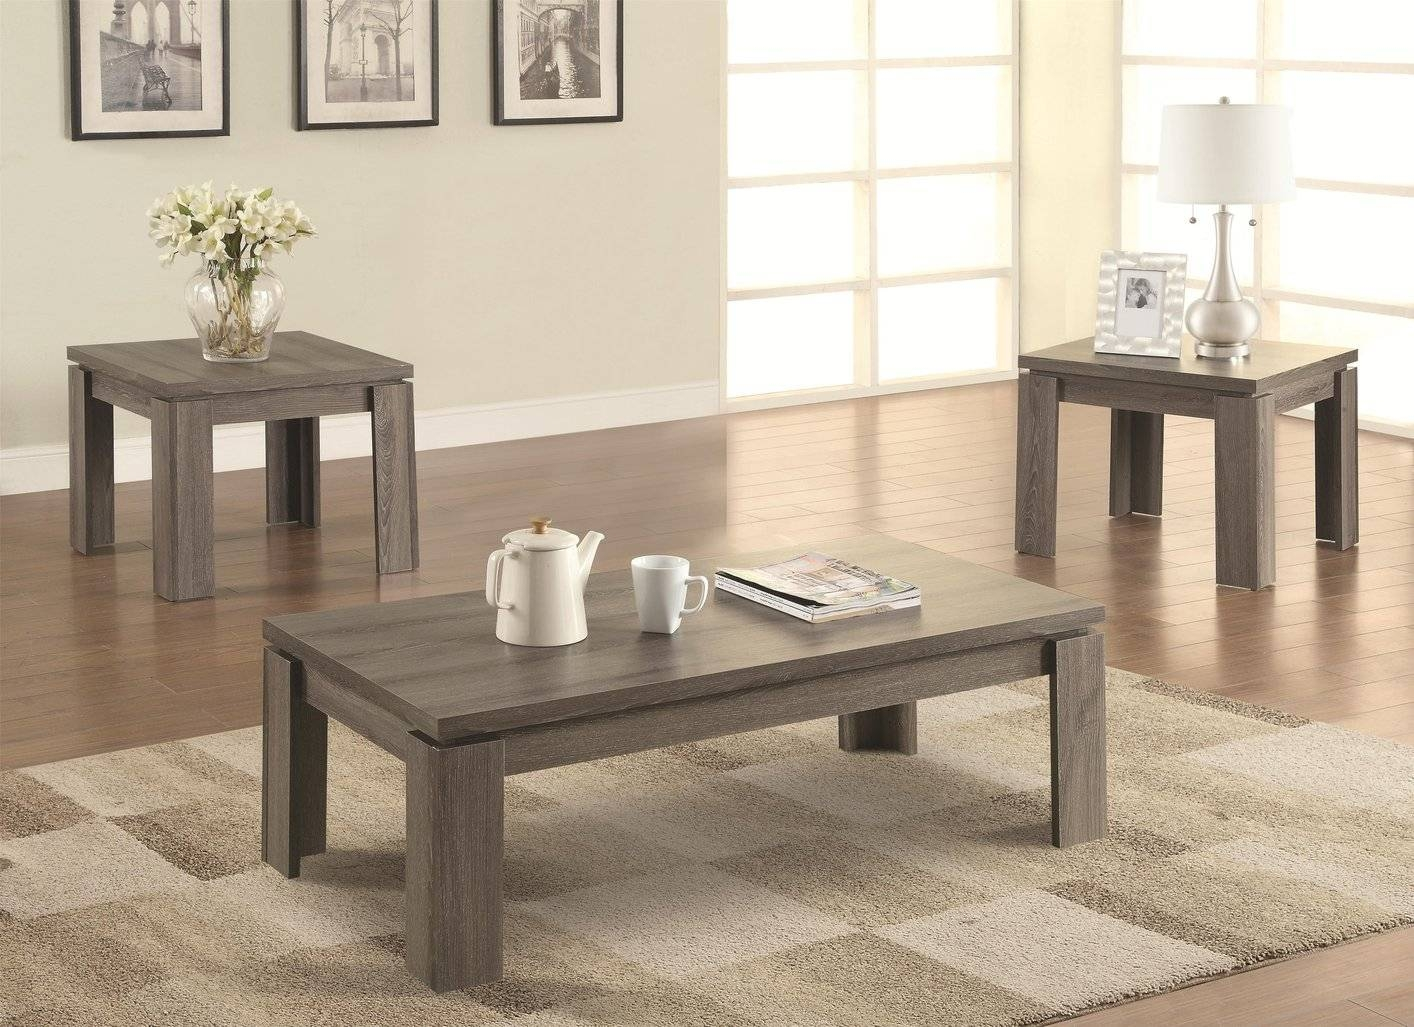 High Quality Wood Coffee Table Sets | Coffee Tables Decoration Regarding Coffee Table  With Matching End Tables (